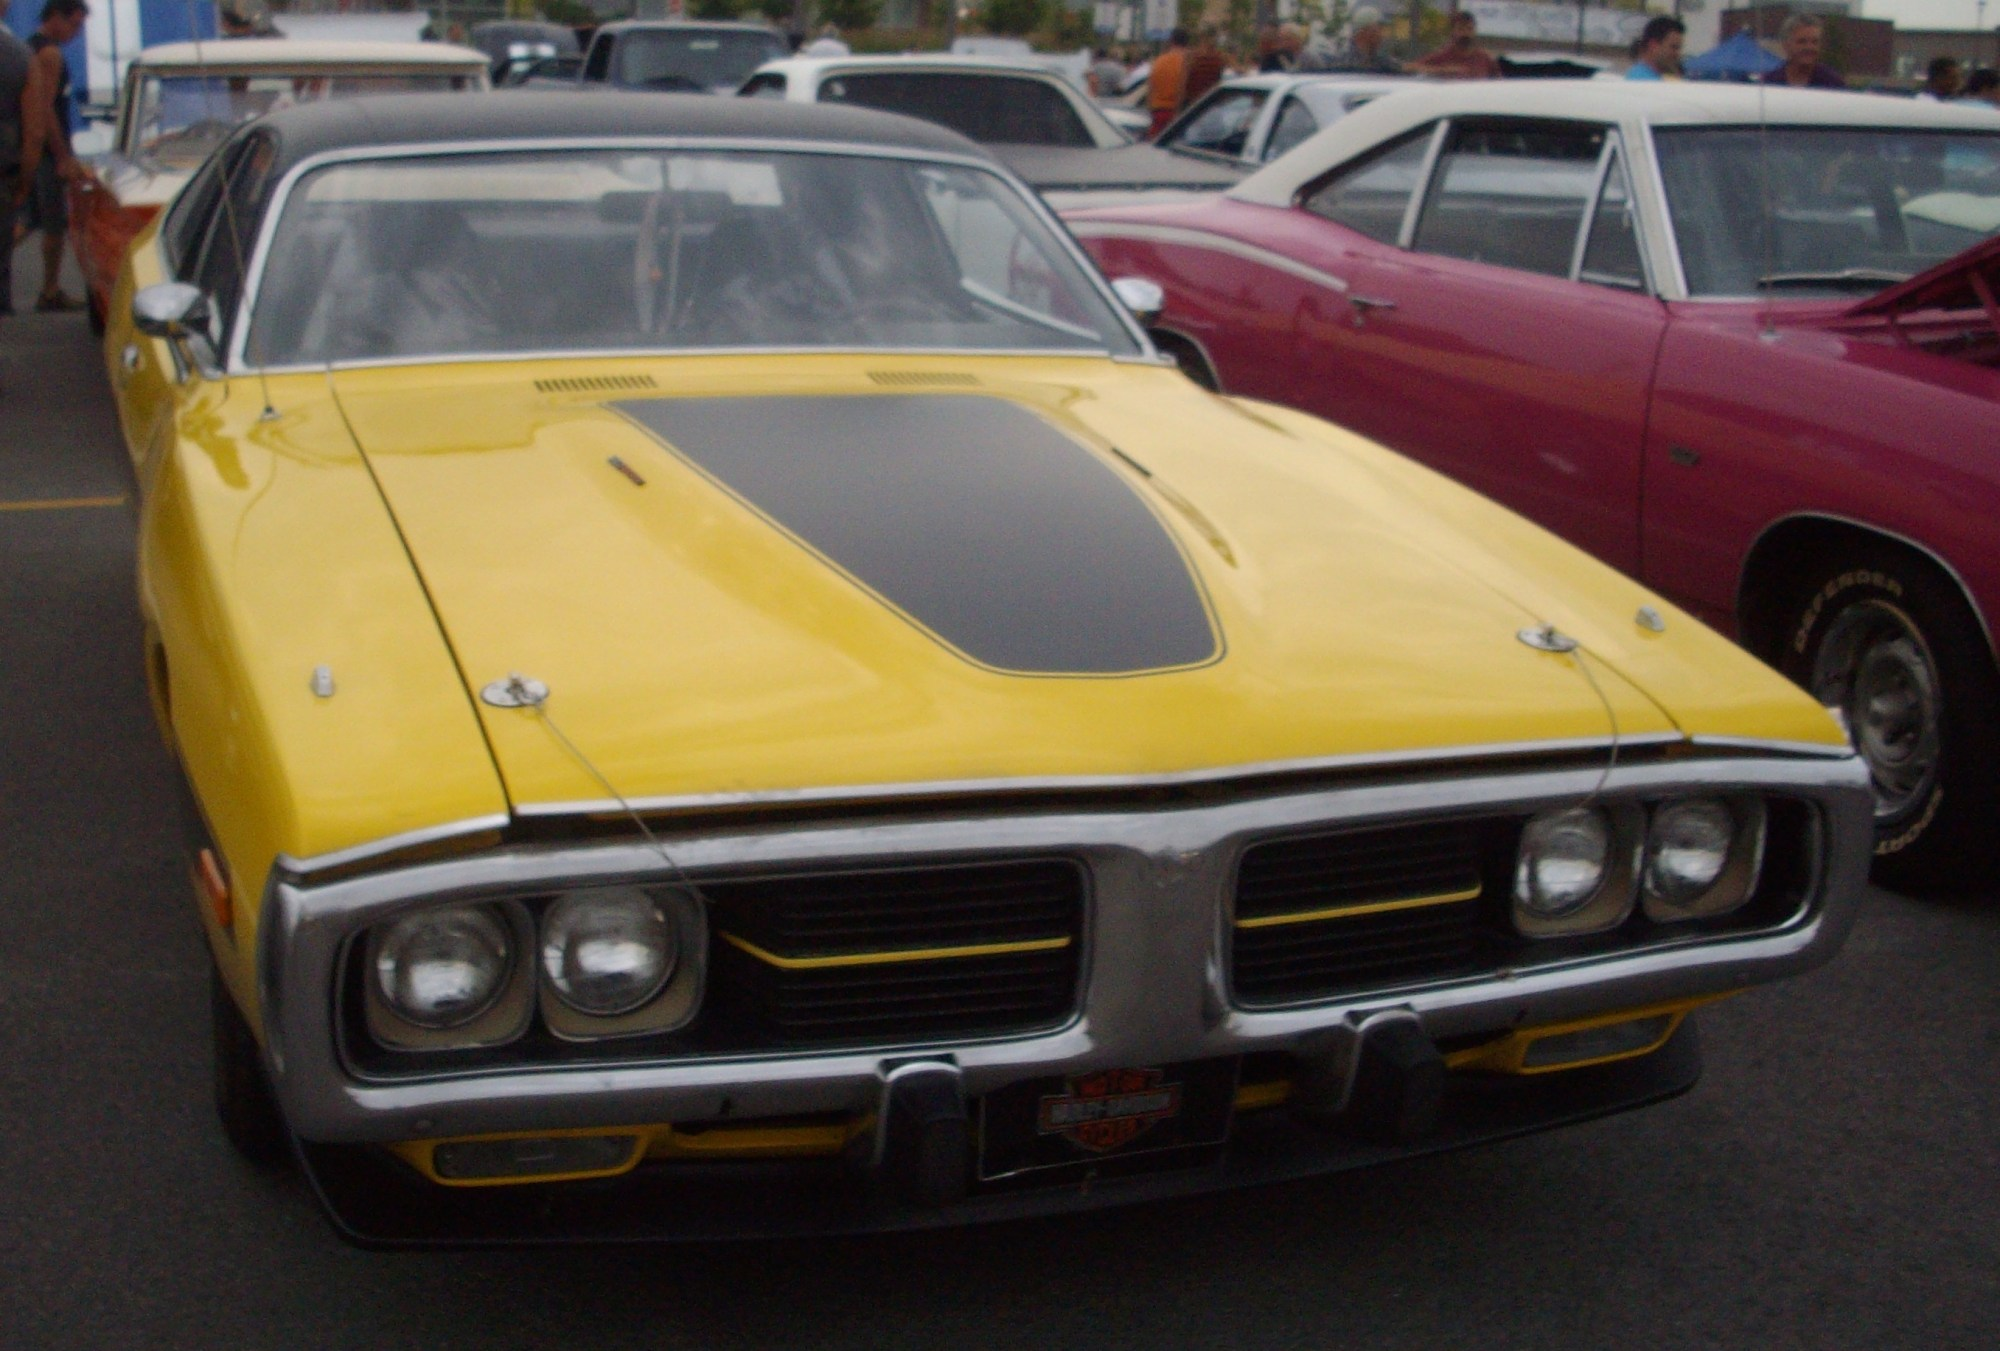 hight resolution of file 73 dodge charger les chauds vendredis